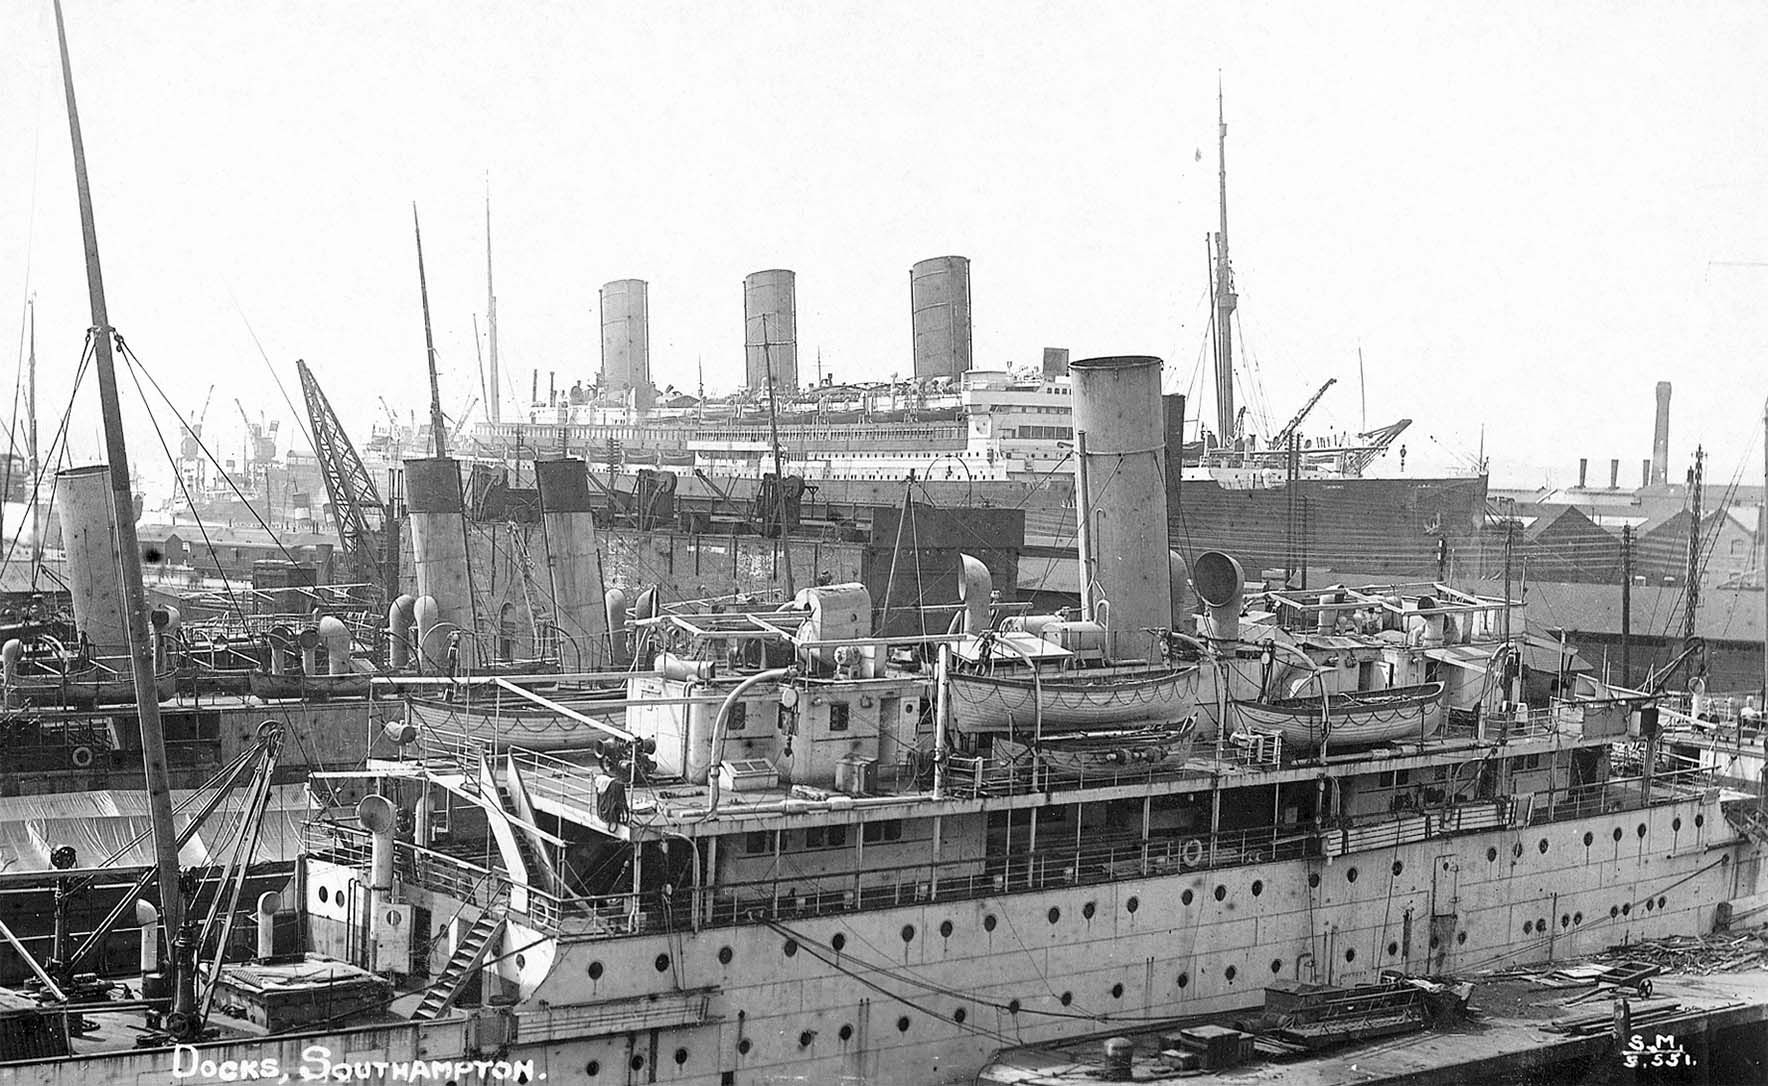 Docks Southampton. Busy Scene In 1920s With